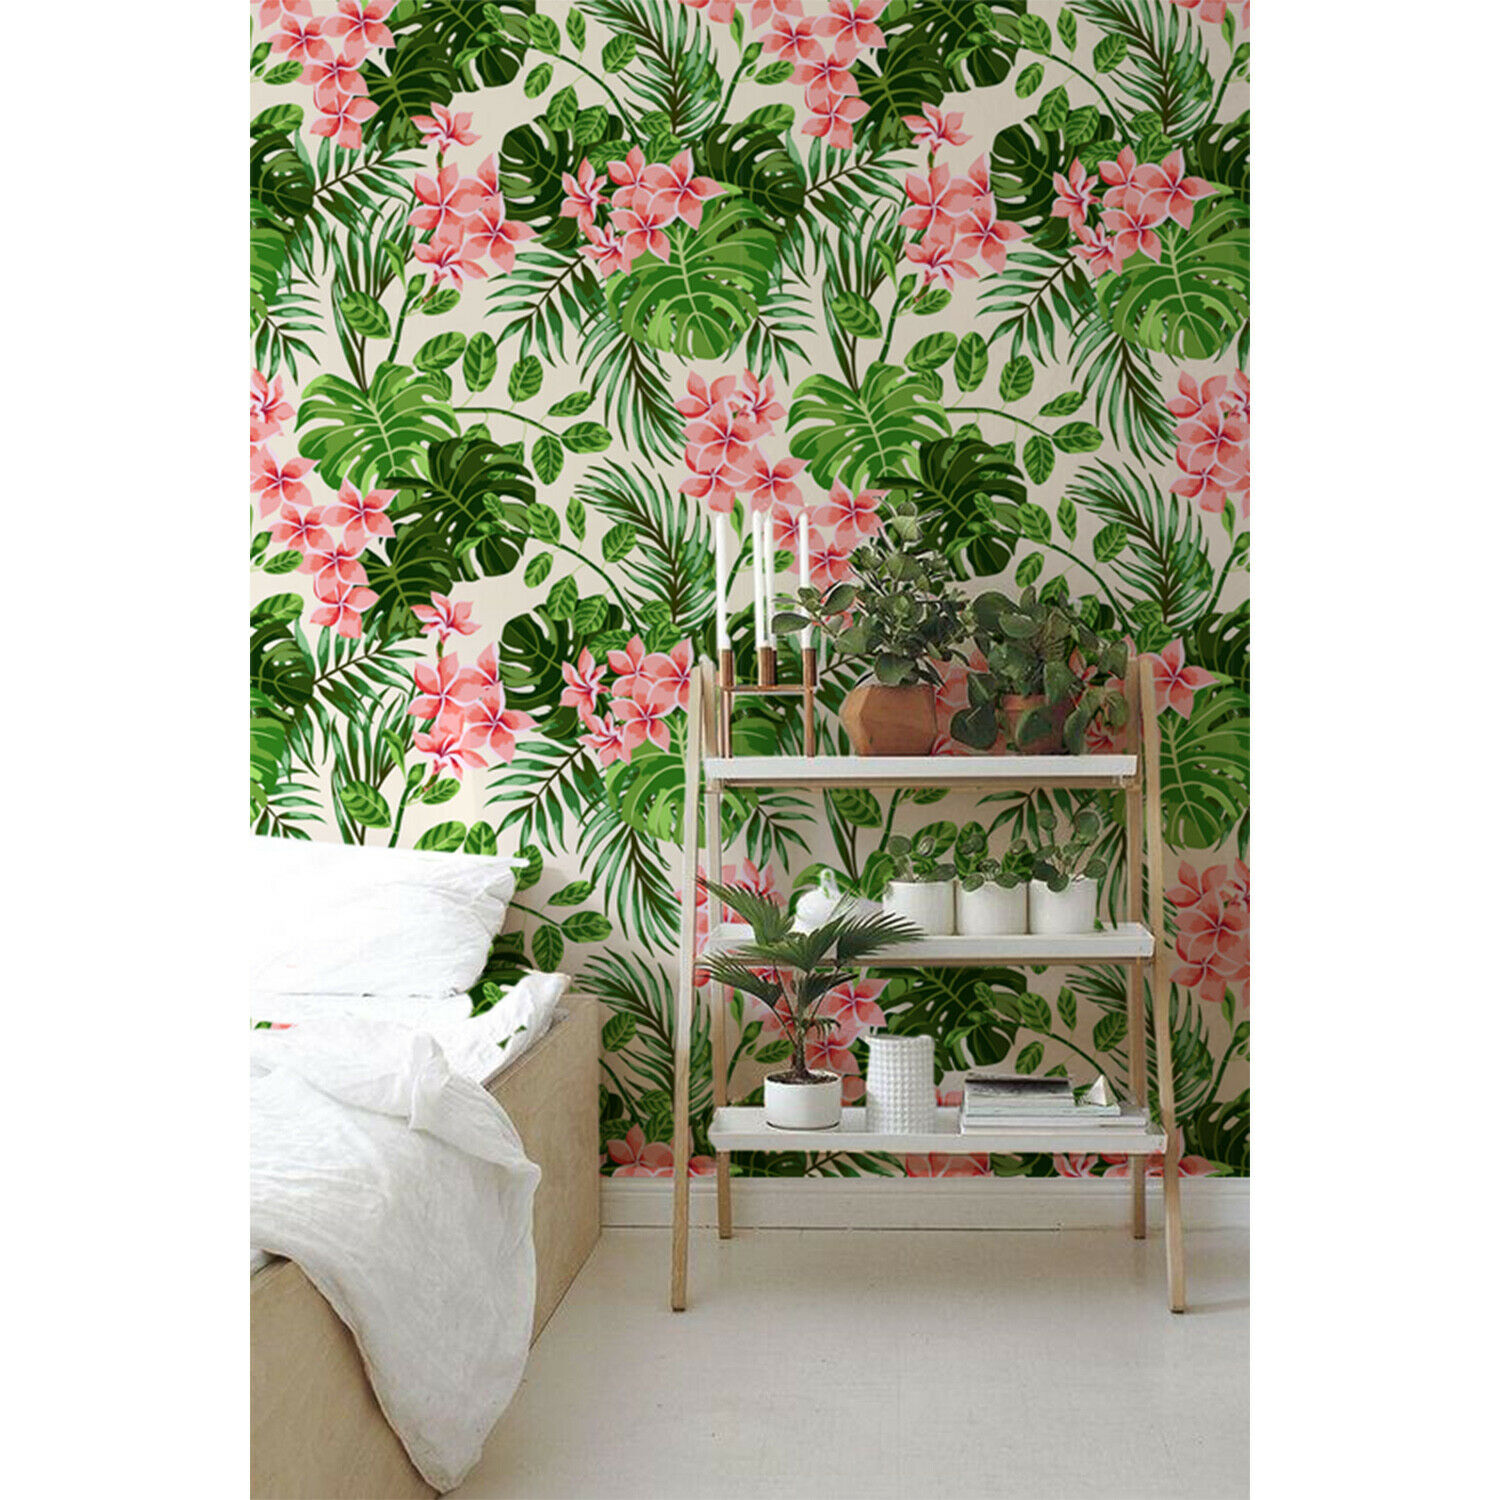 Bright Hawaii Non-Woven wallpaper WaterFarbe wall mural Leaves Floral Home decor